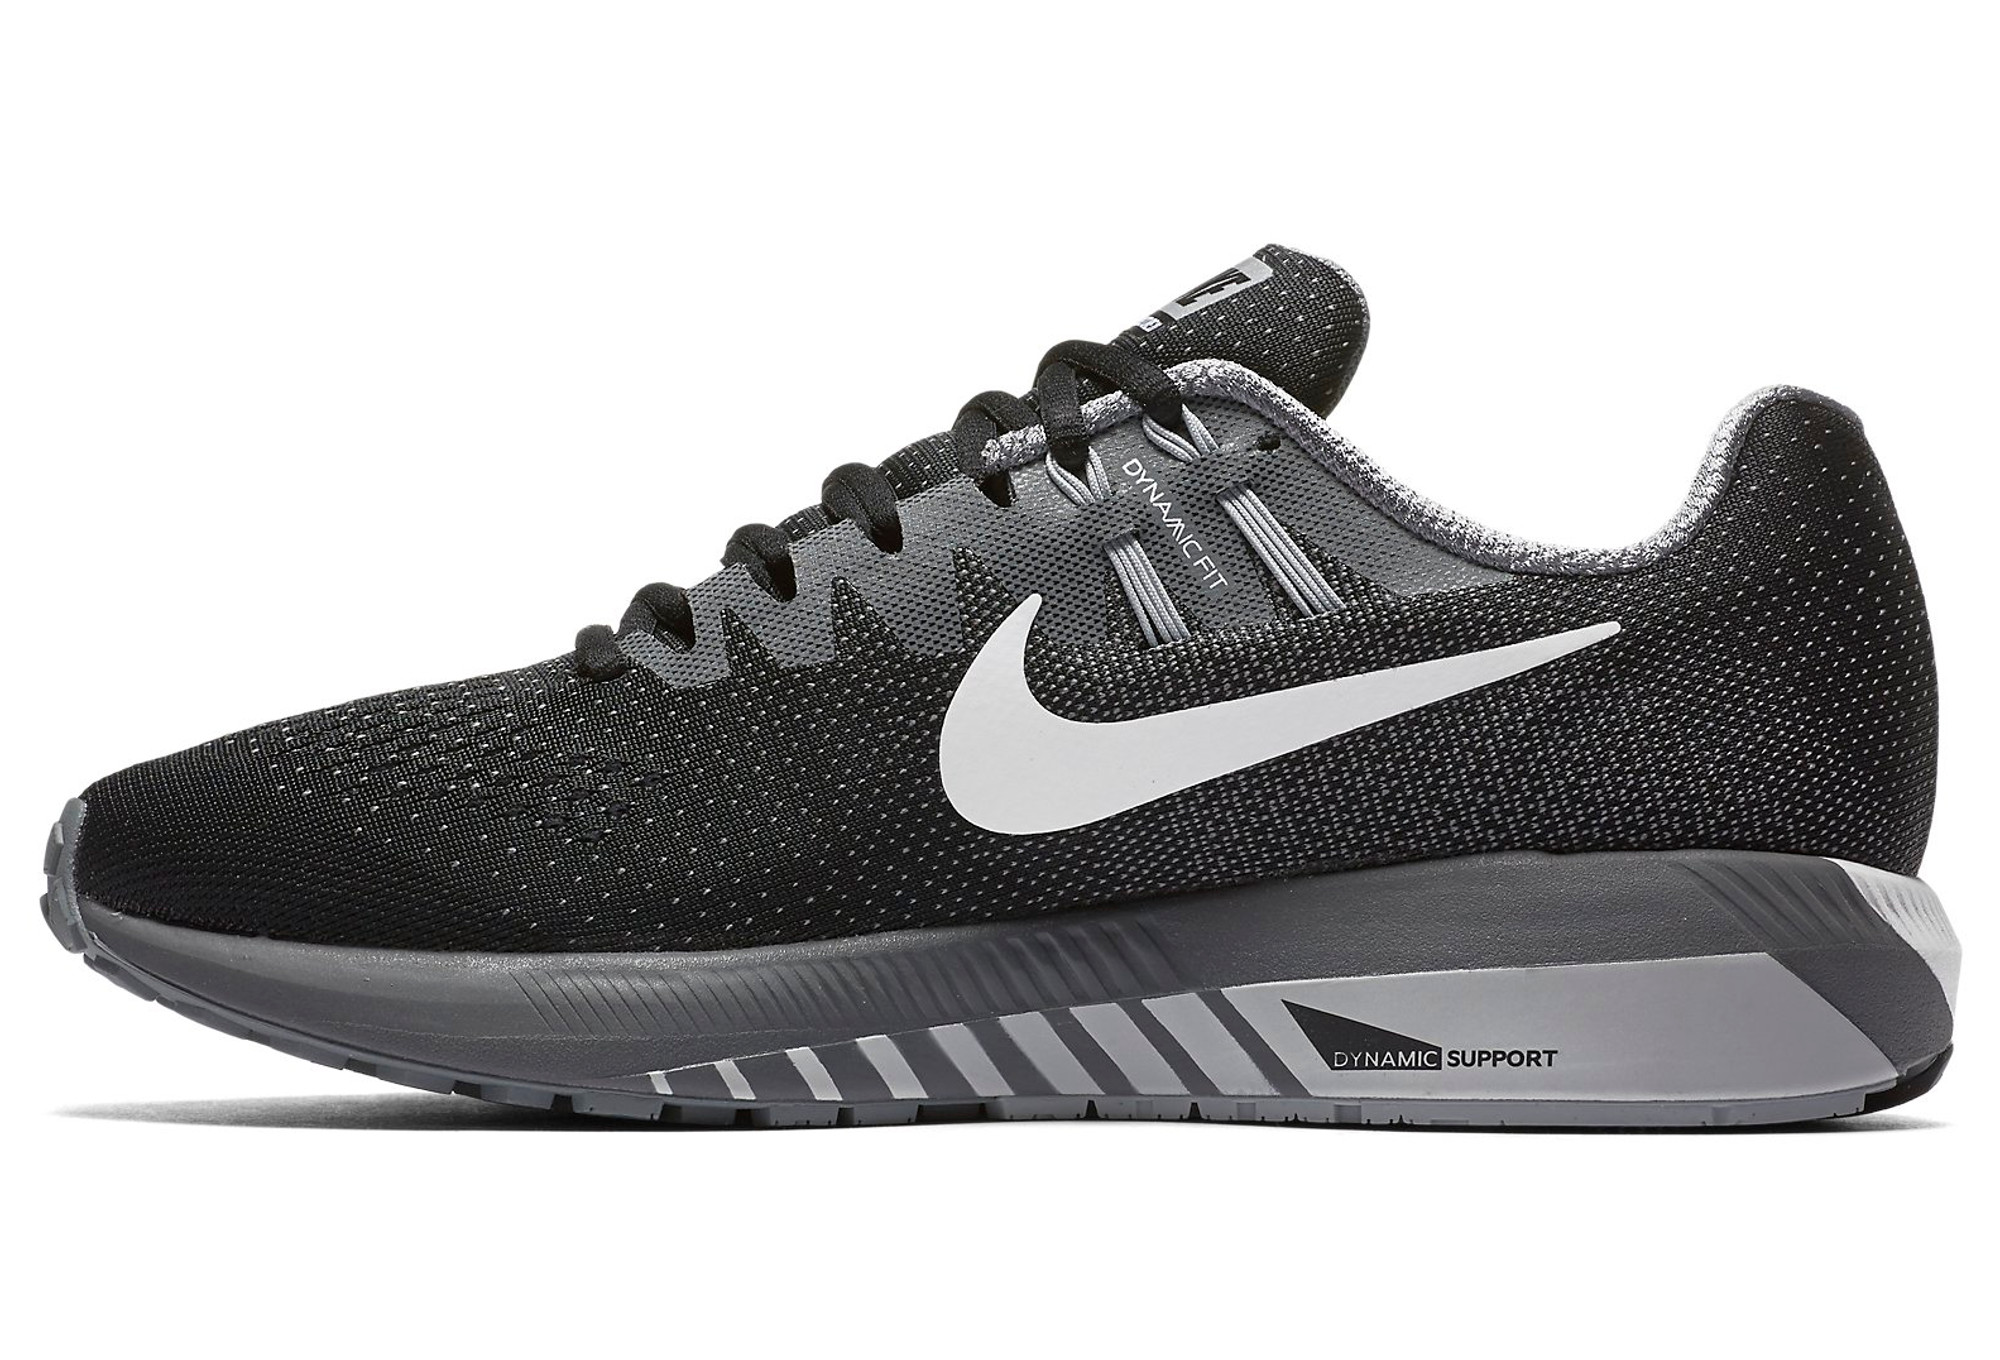 bd6d667e674f NIKE AIR ZOOM STRUCTURE 20 Black White Grey Women